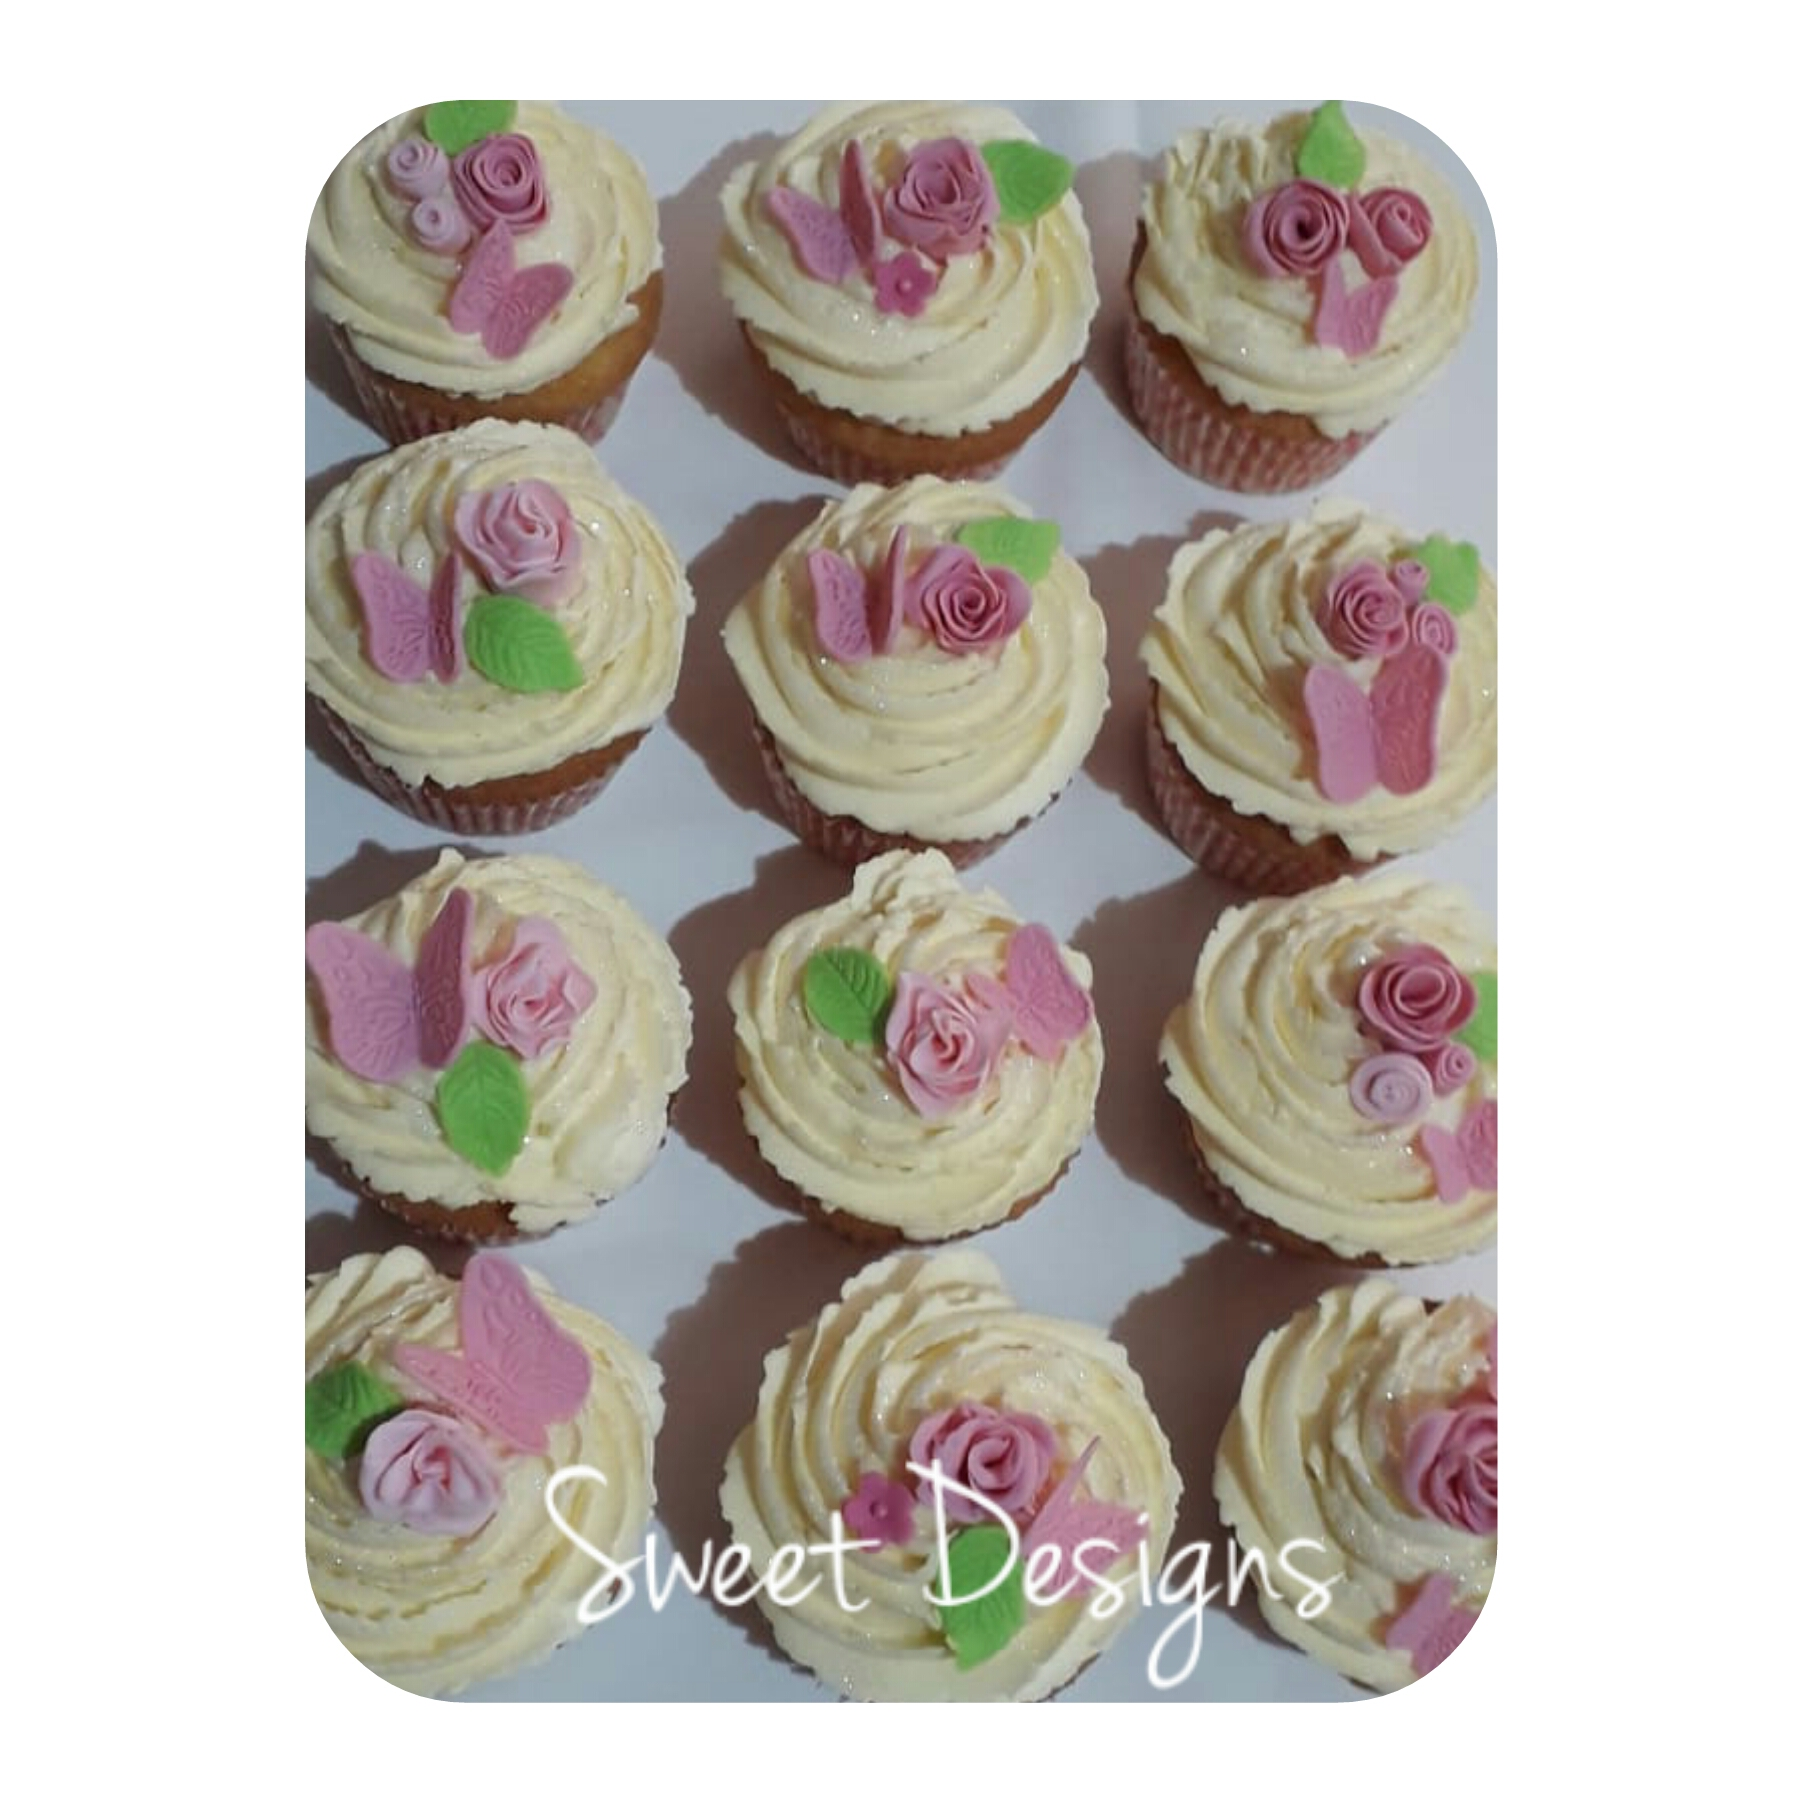 Cupcakes with Roses and Butterflies